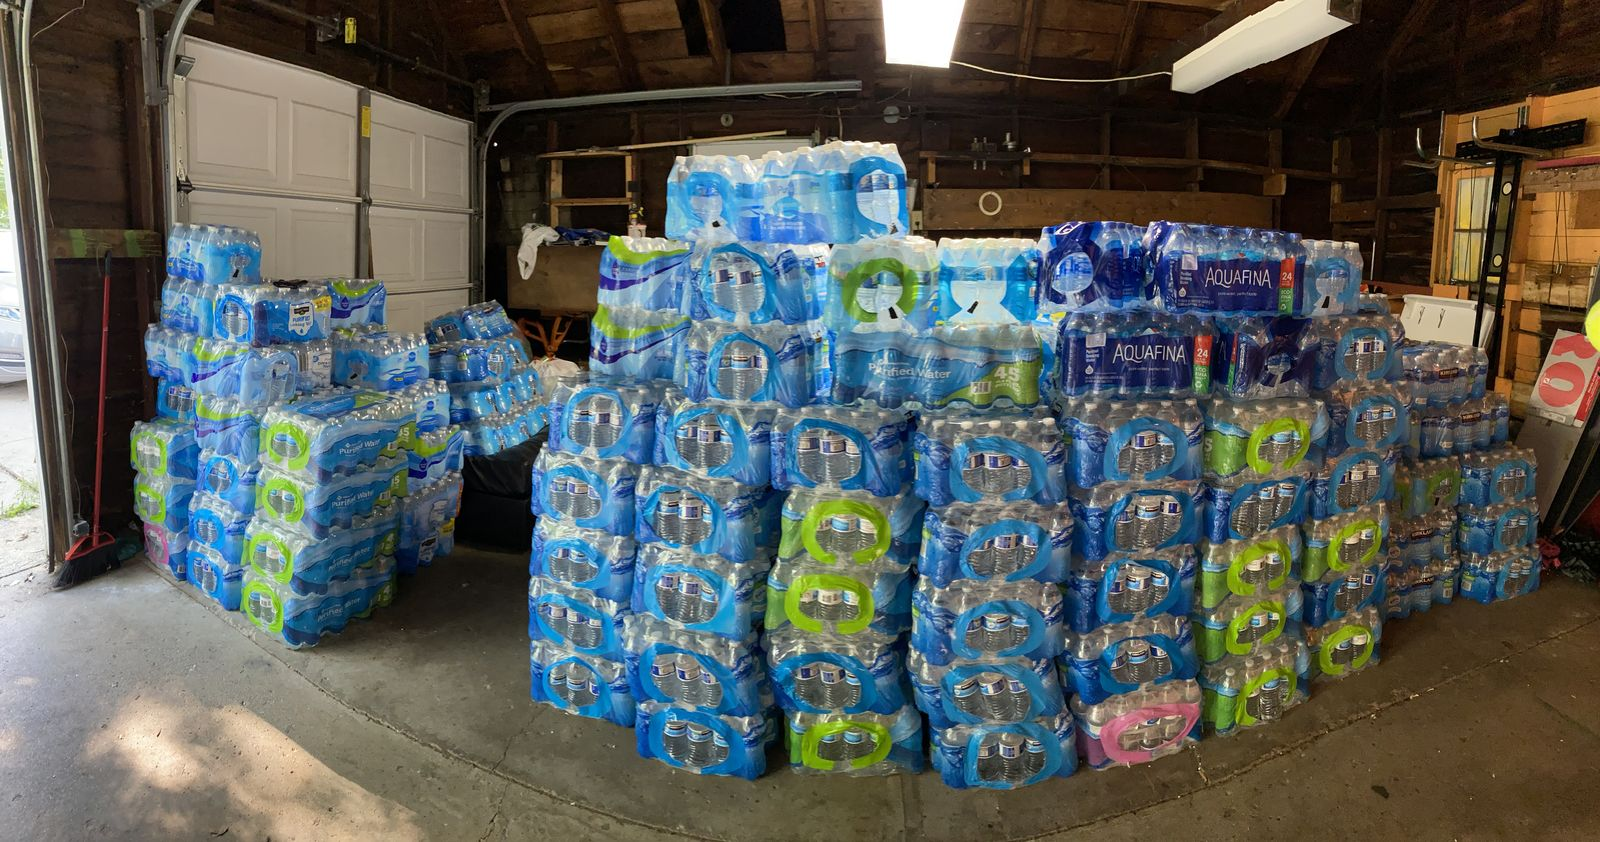 Tamara Custard's garage resembles a water storage warehouse on Tuesday, July 27, 2020. More than 250 cases were in her garage, with another 250 more pledged by local businesses. (WWMT/Jason Heeres)